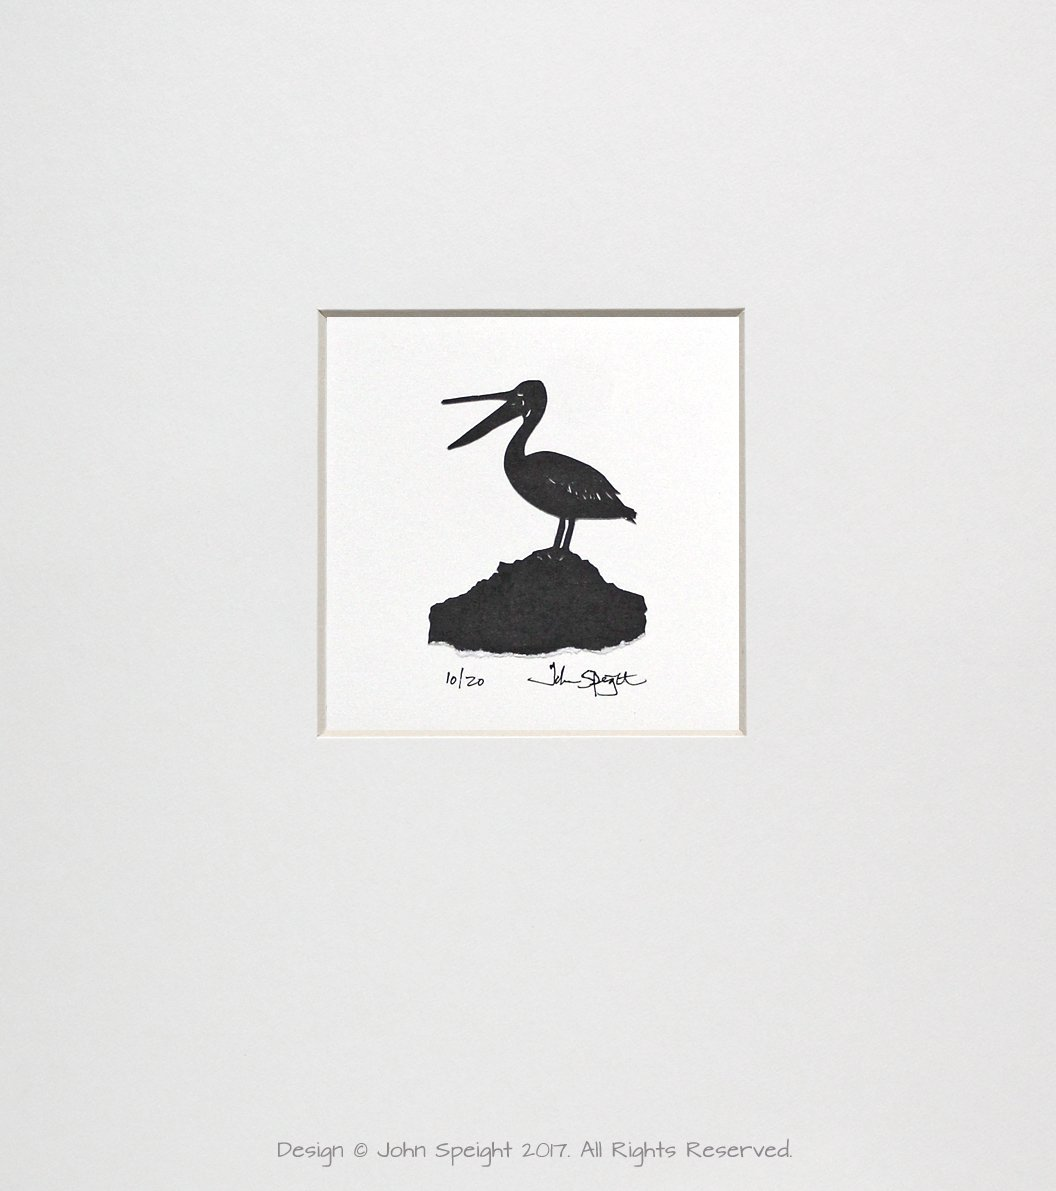 Pelican Original Signed Hand Cut Silhouette Papercut Art by John Speight - Gift for Him and Her